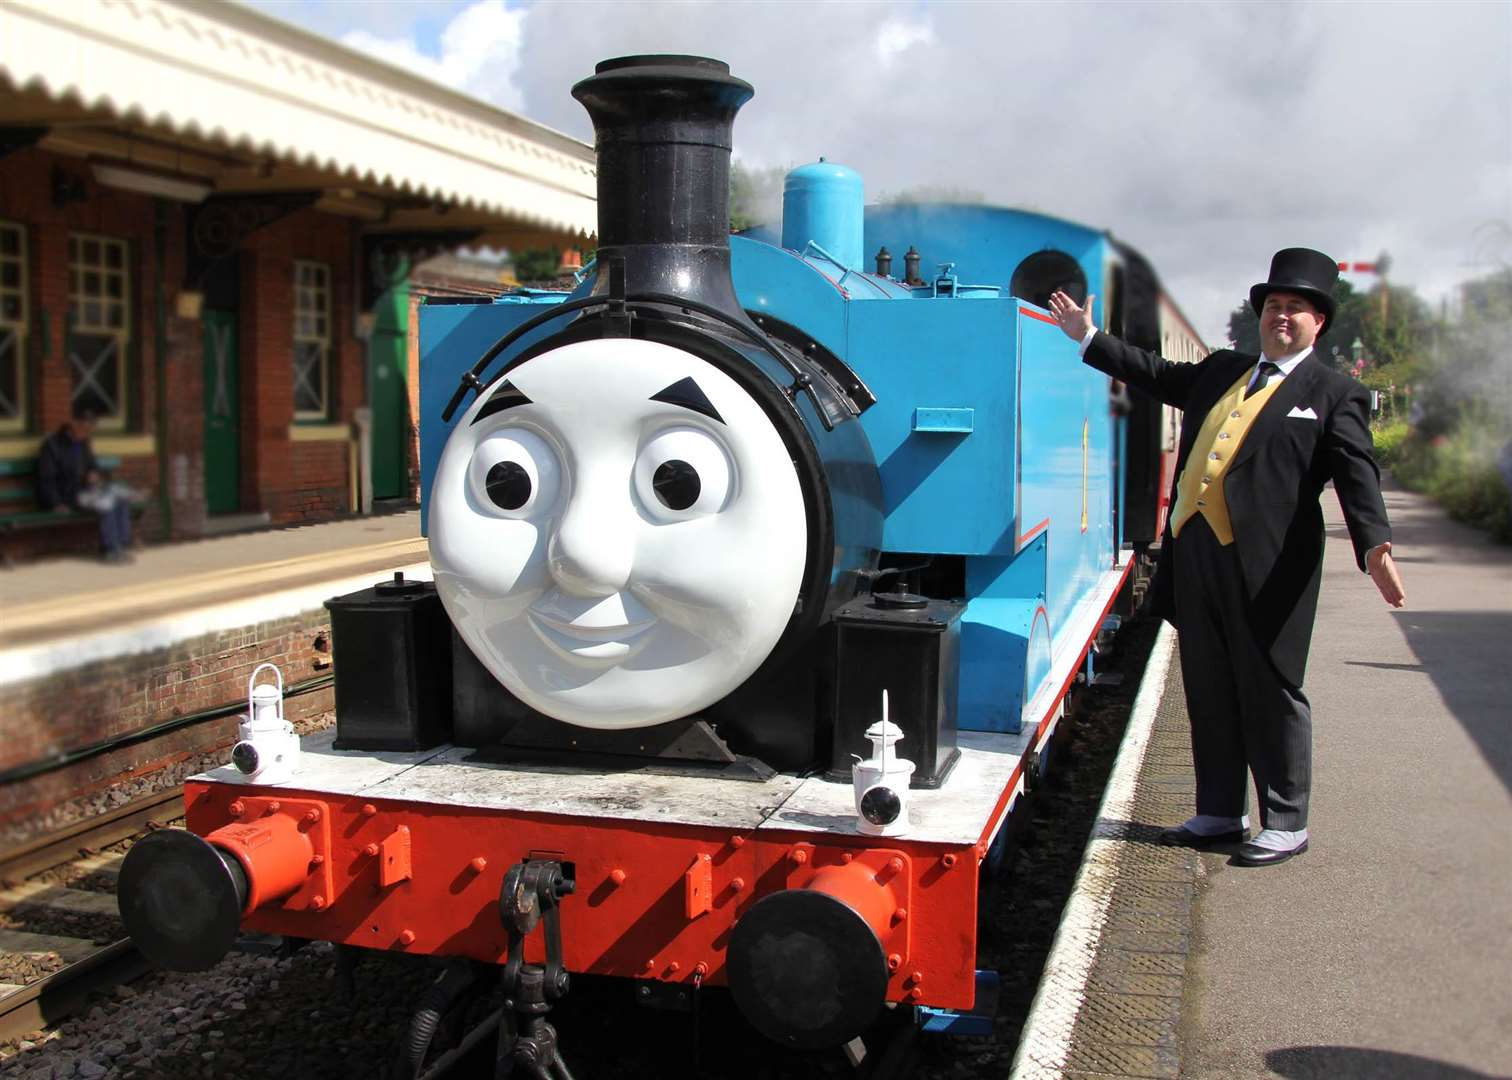 You will be able to meet the Fat Controller as part of your visit